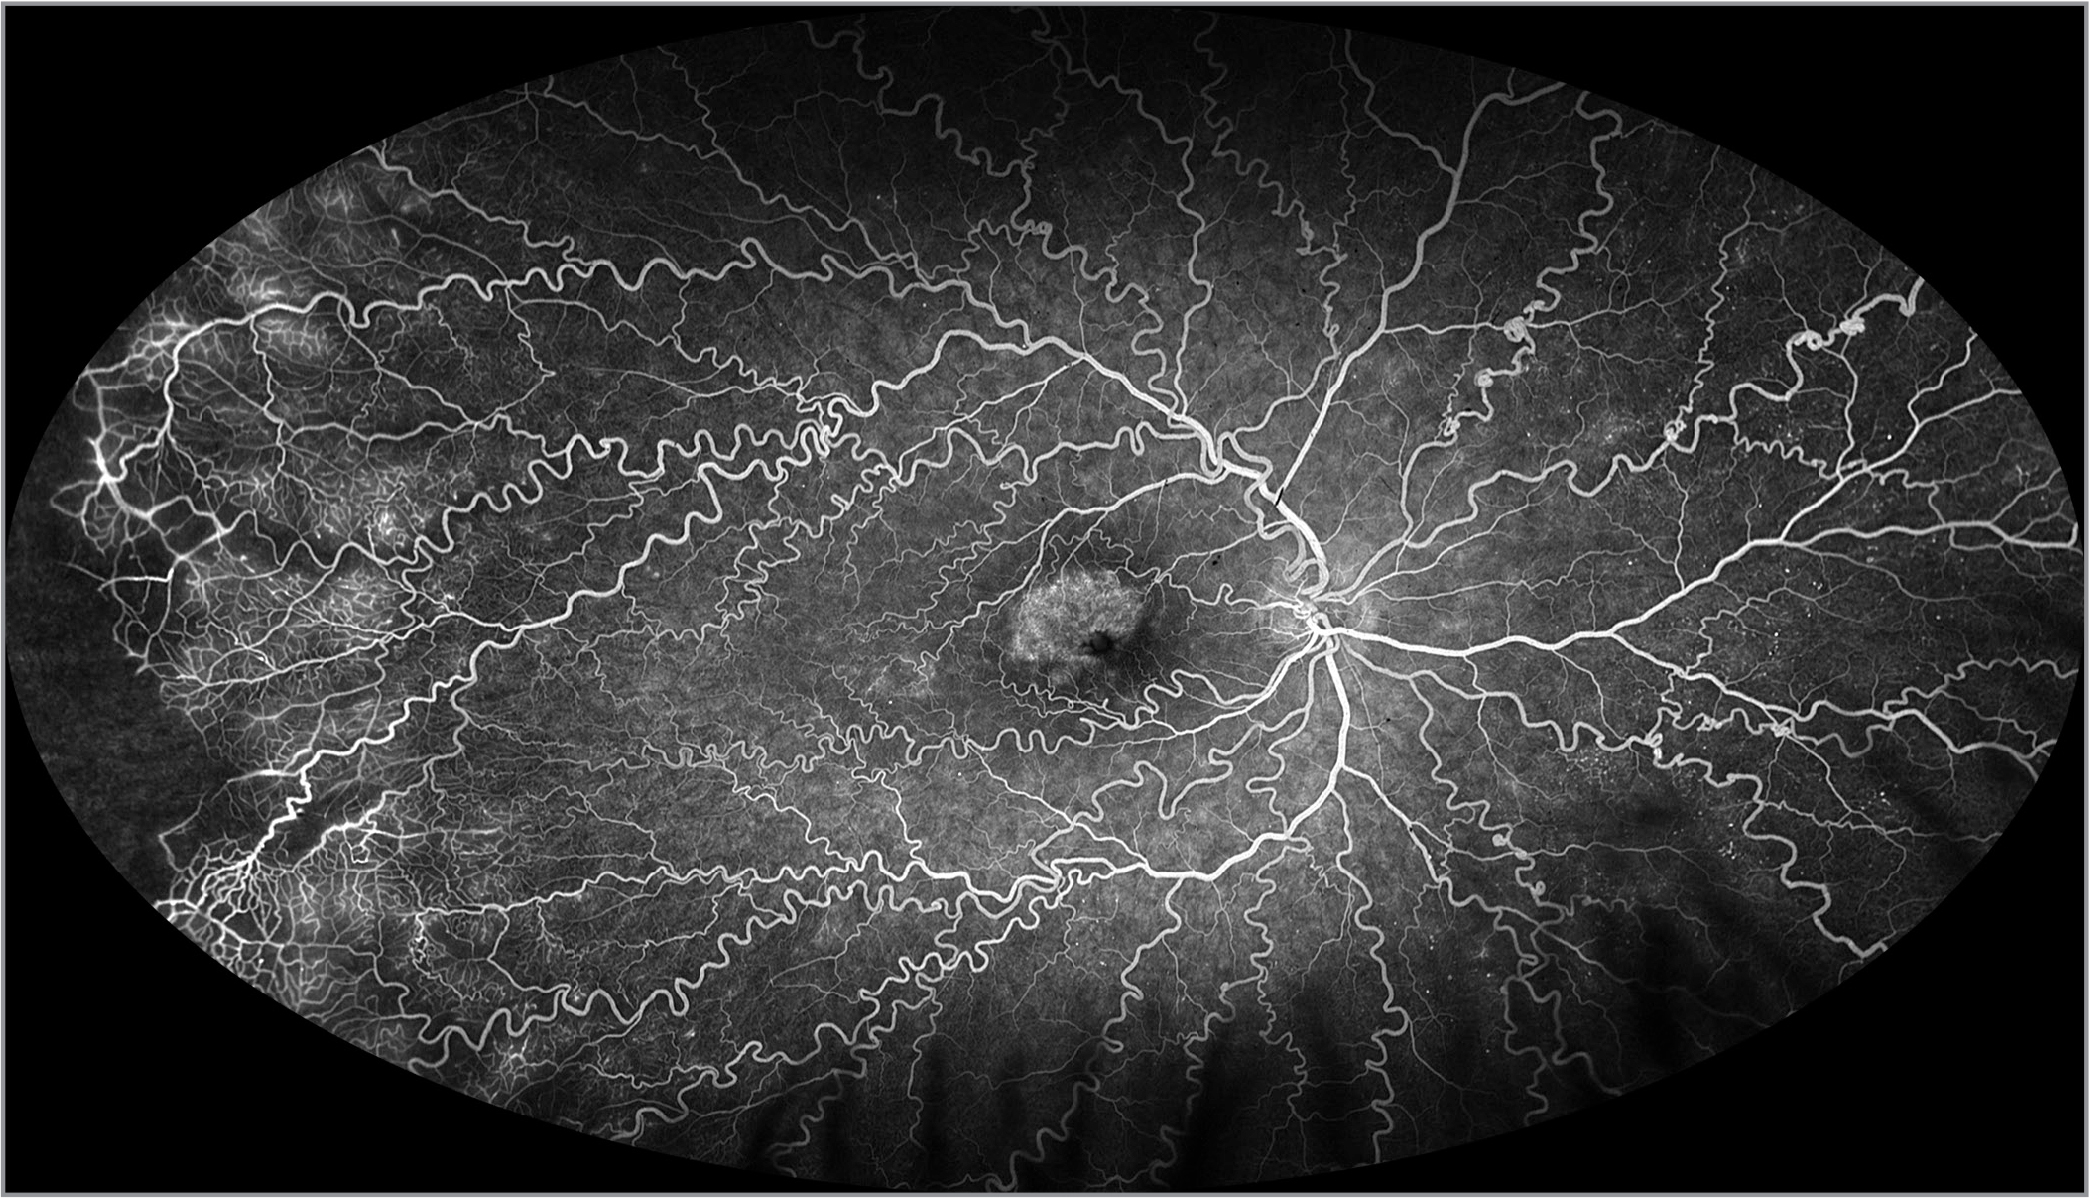 Ultra-widefield fluorescein angiography demonstrates scattered microaneurysms, peripheral capillary telangiectasia and nonperfusion, and macular leakage.